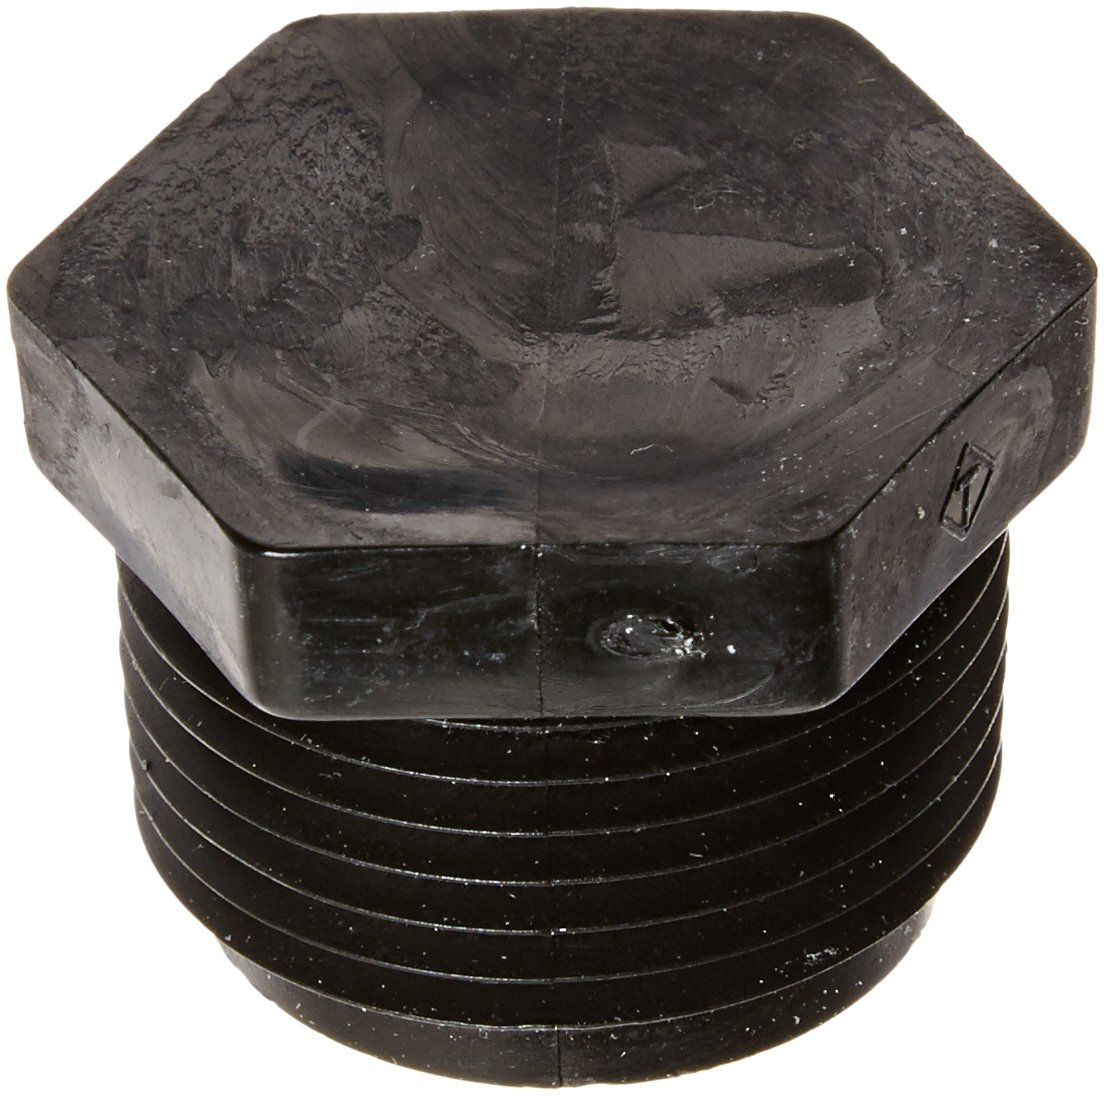 UltraTech 9960 Drain Plug, For Drains or